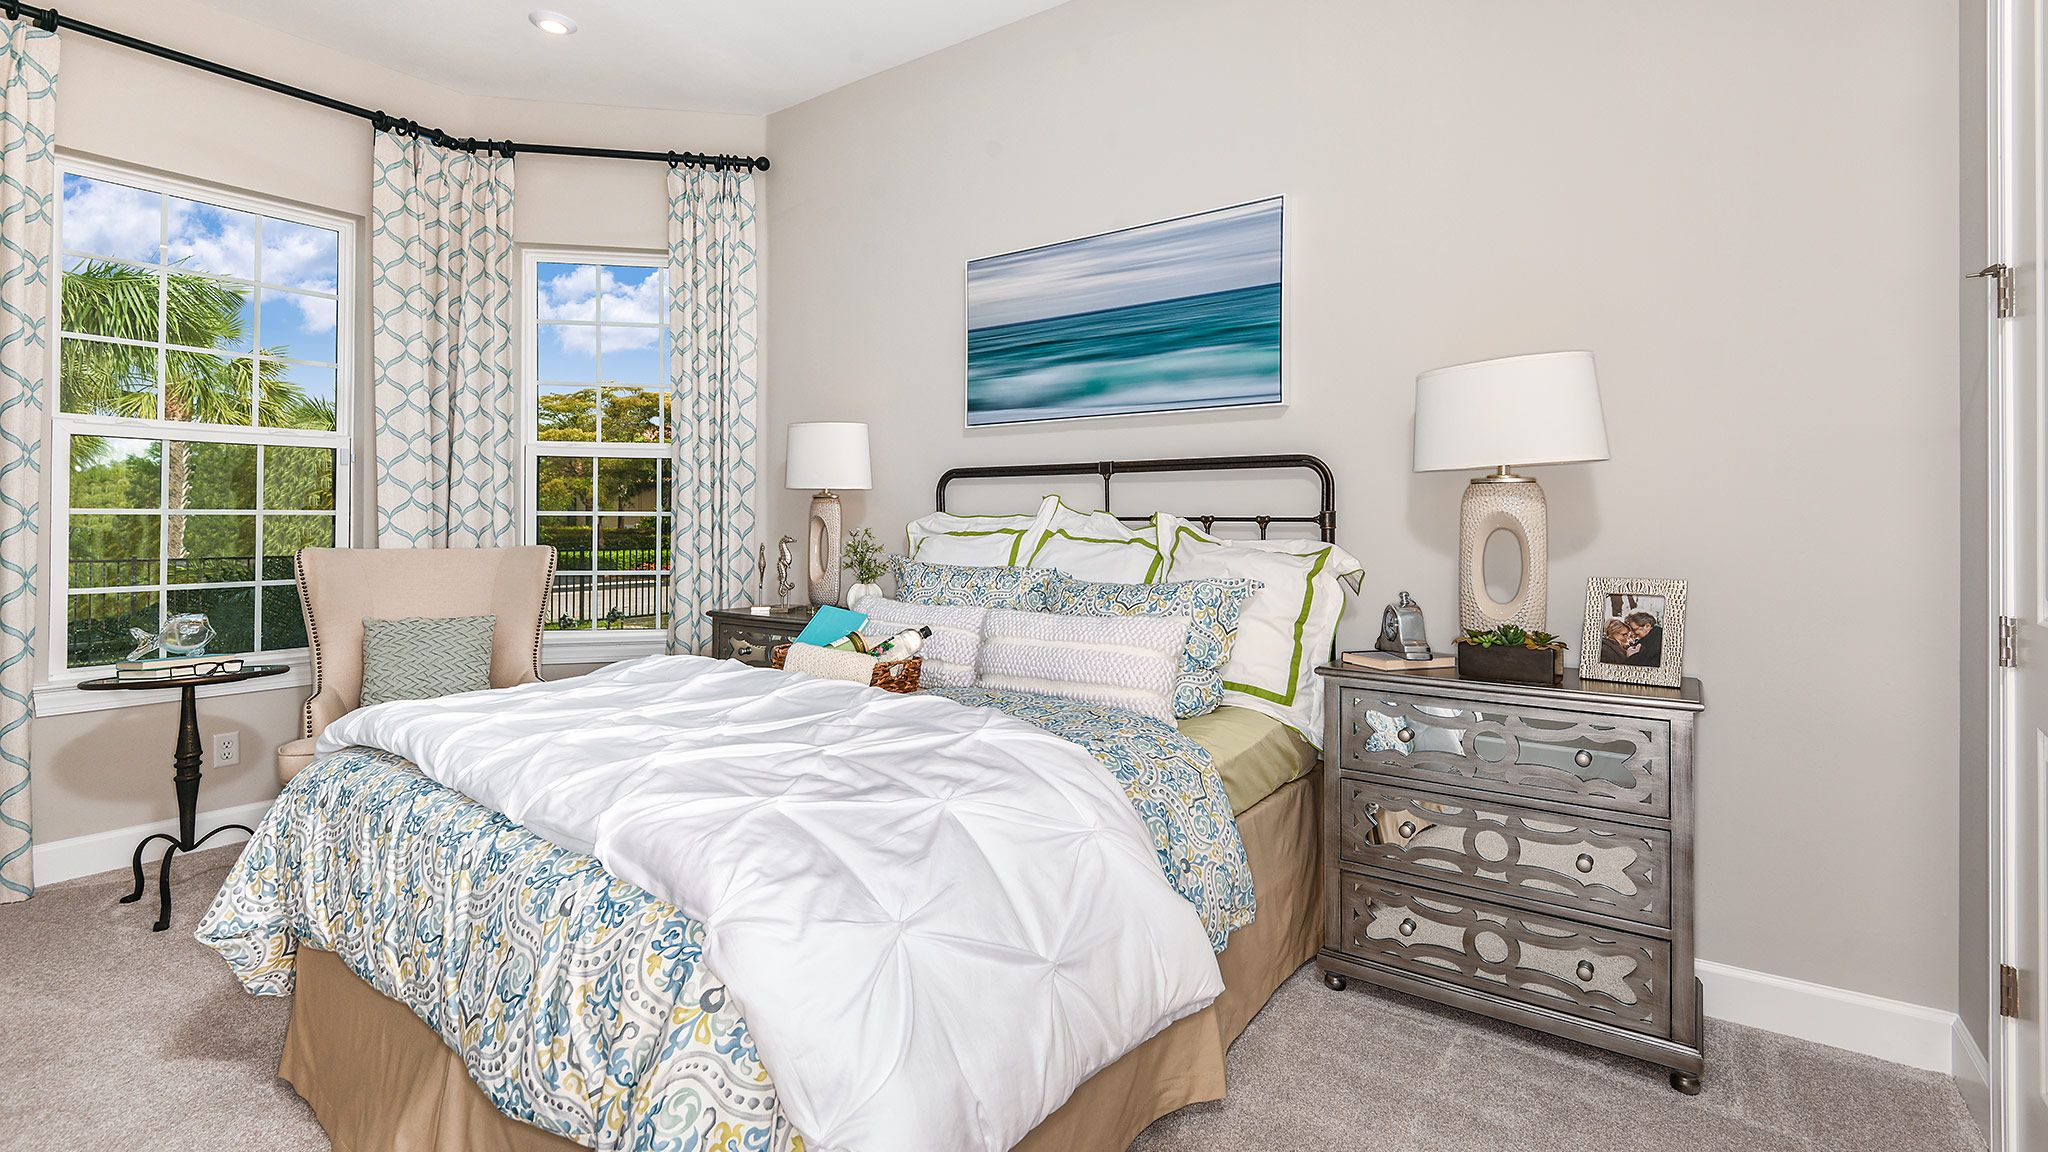 Bedroom featured in the Lazio Plan By Taylor Morrison in Naples, FL